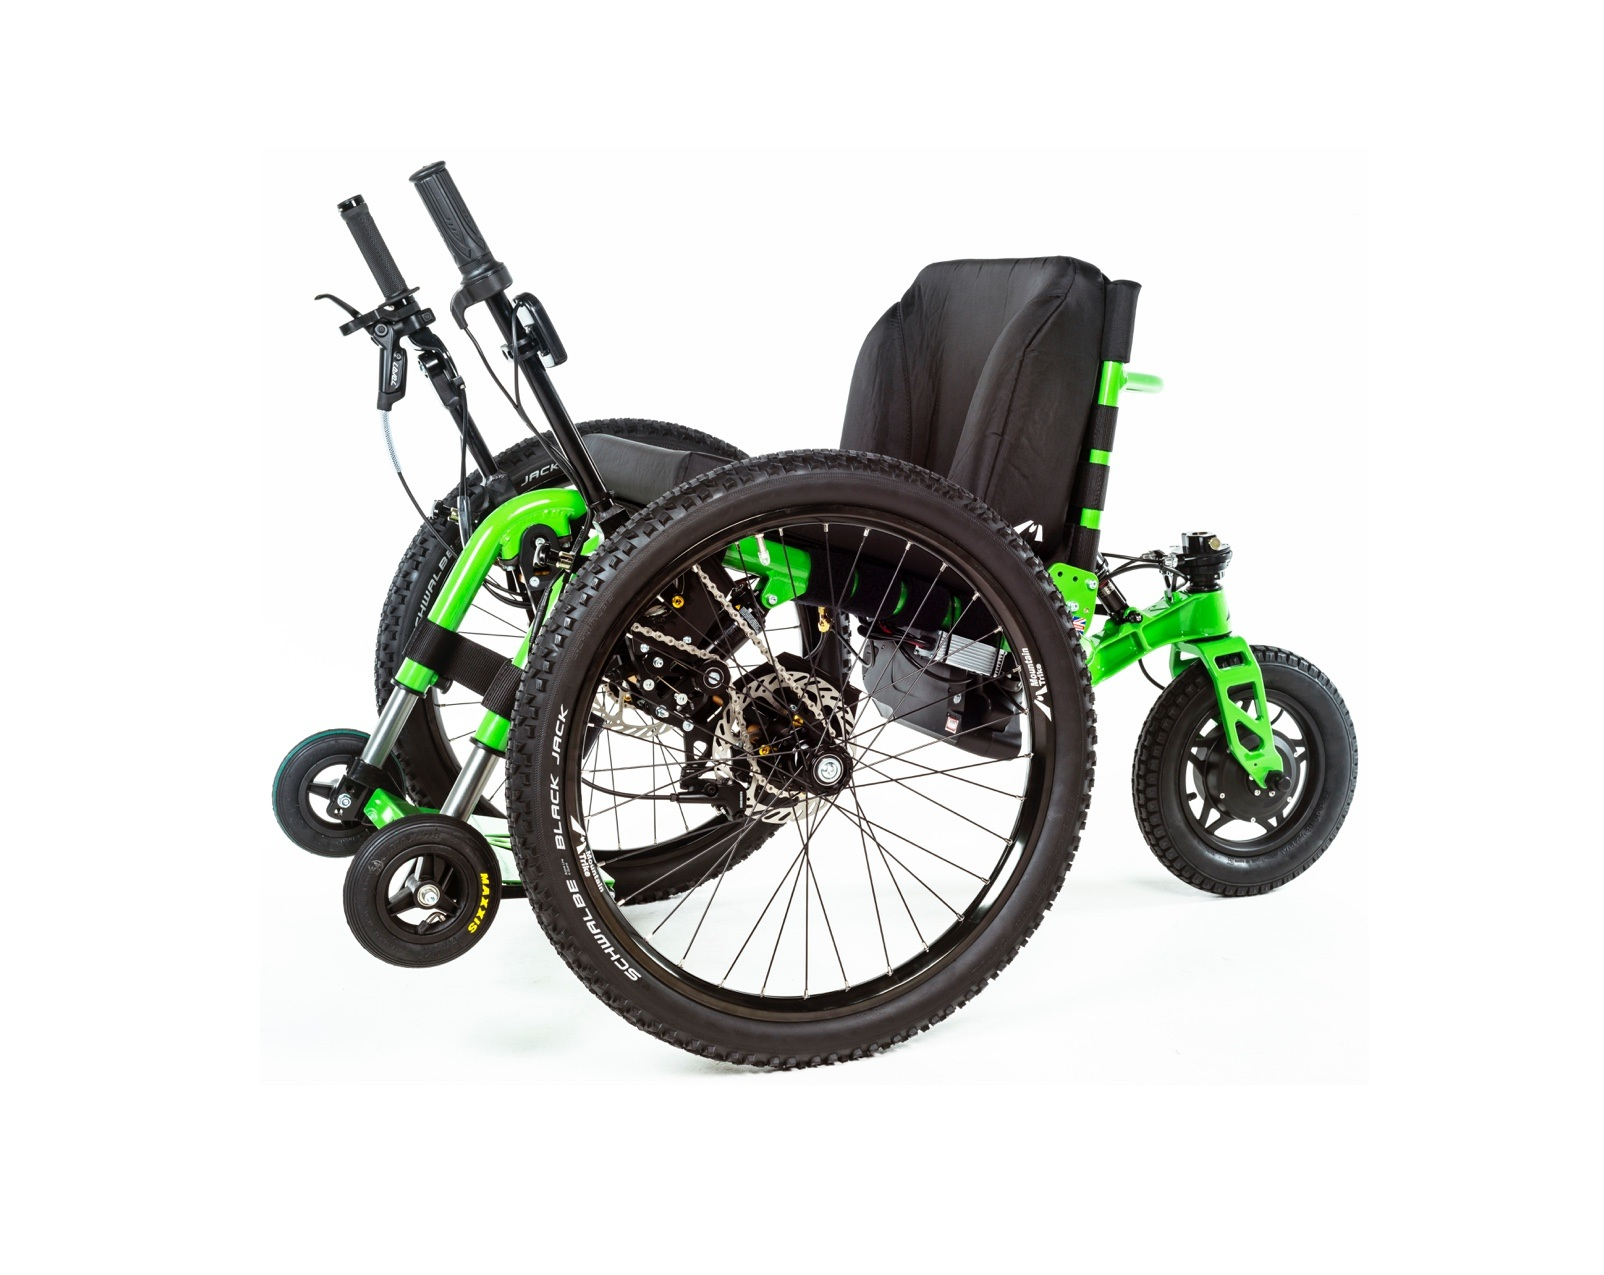 Exciting and versatile new product launch from innovating mobility company Mountain Trike